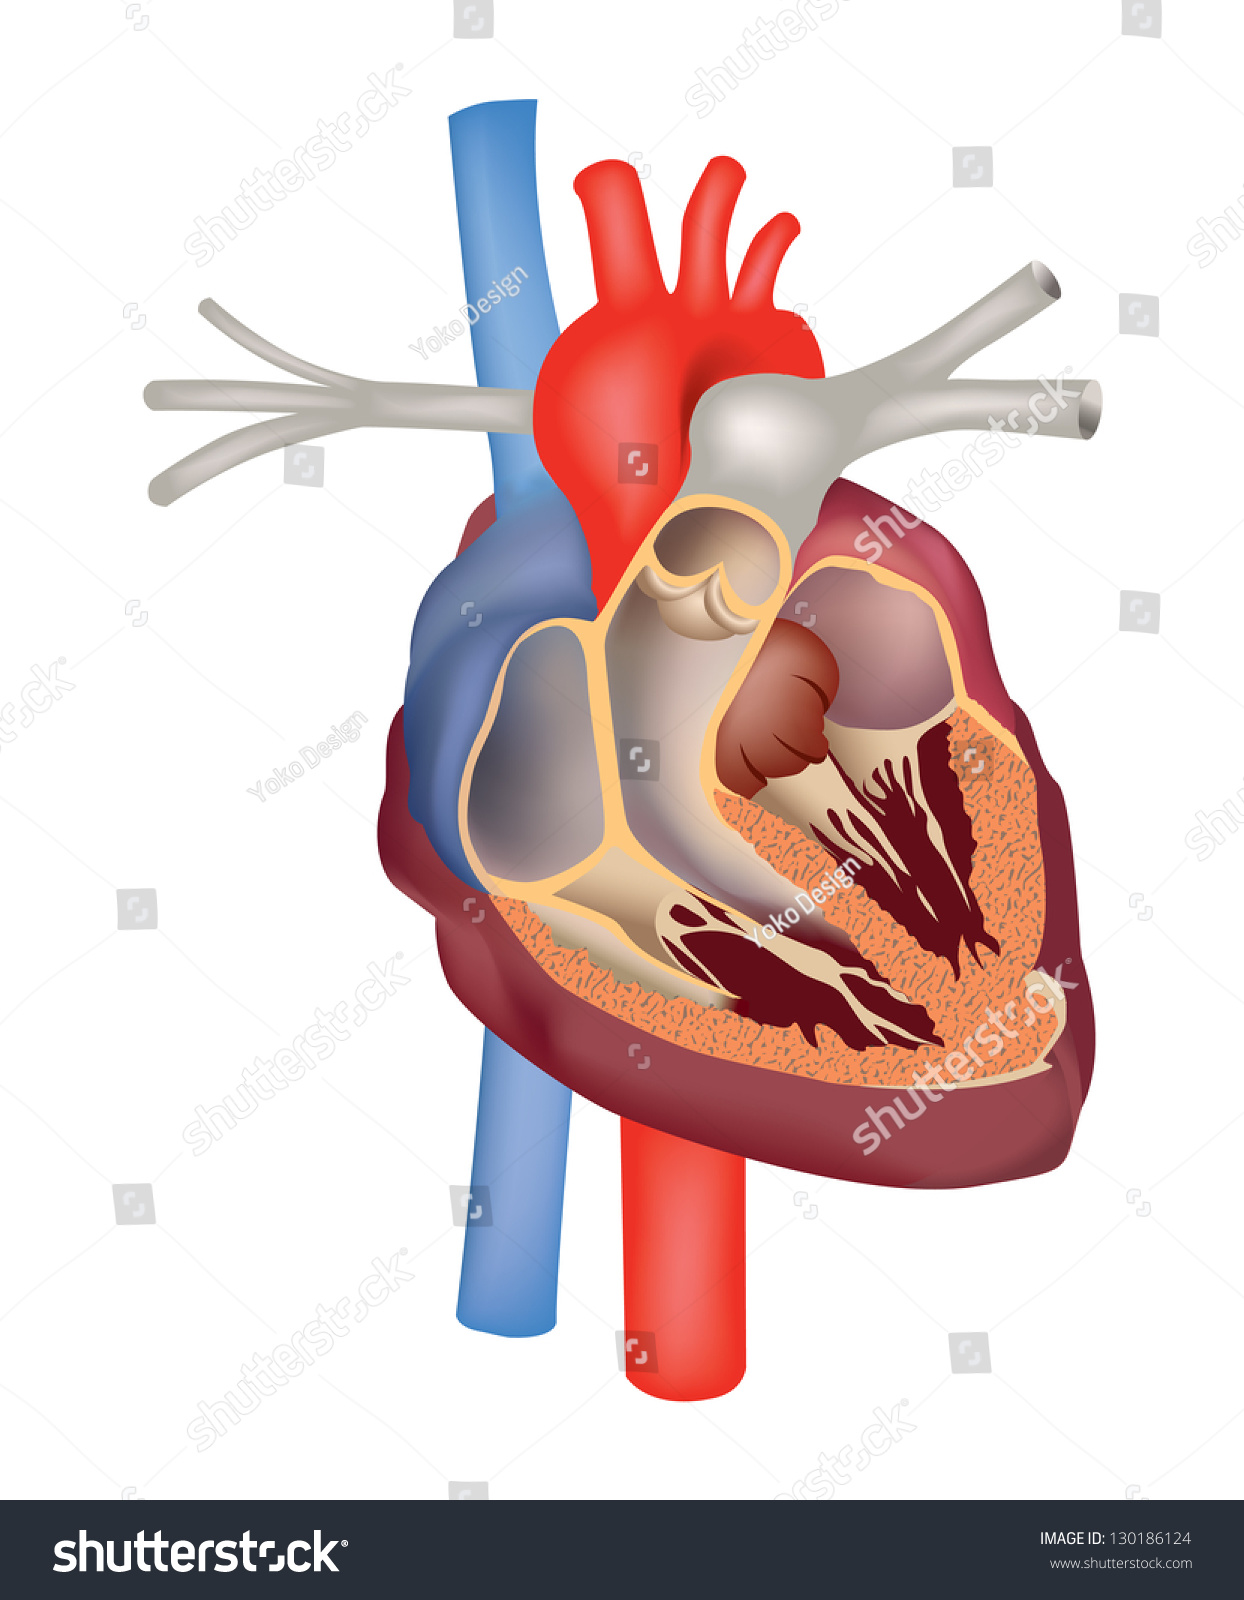 Heart anatomy medical sign human heart stock vector 130186124 heart anatomy medical sign human heart cross section structure ccuart Choice Image